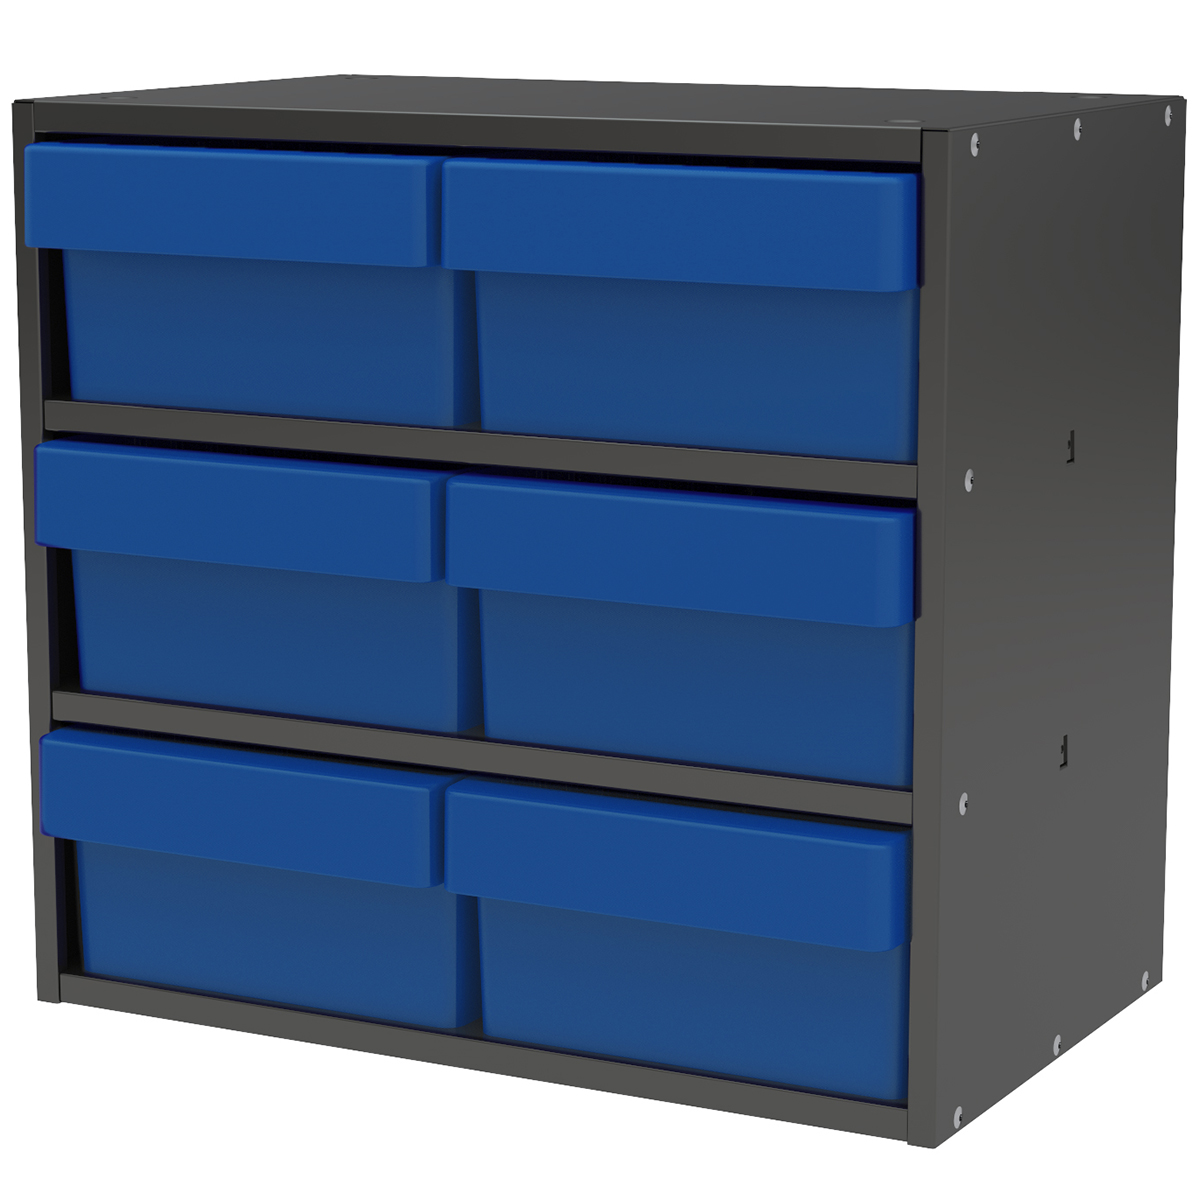 Item DISCONTINUED by Manufacturer.  Modular Cabinet, 18x11x16, 6 Drawers, Gray/Blue (AD1811C82BLU).  This item sold in carton quantities of 1.